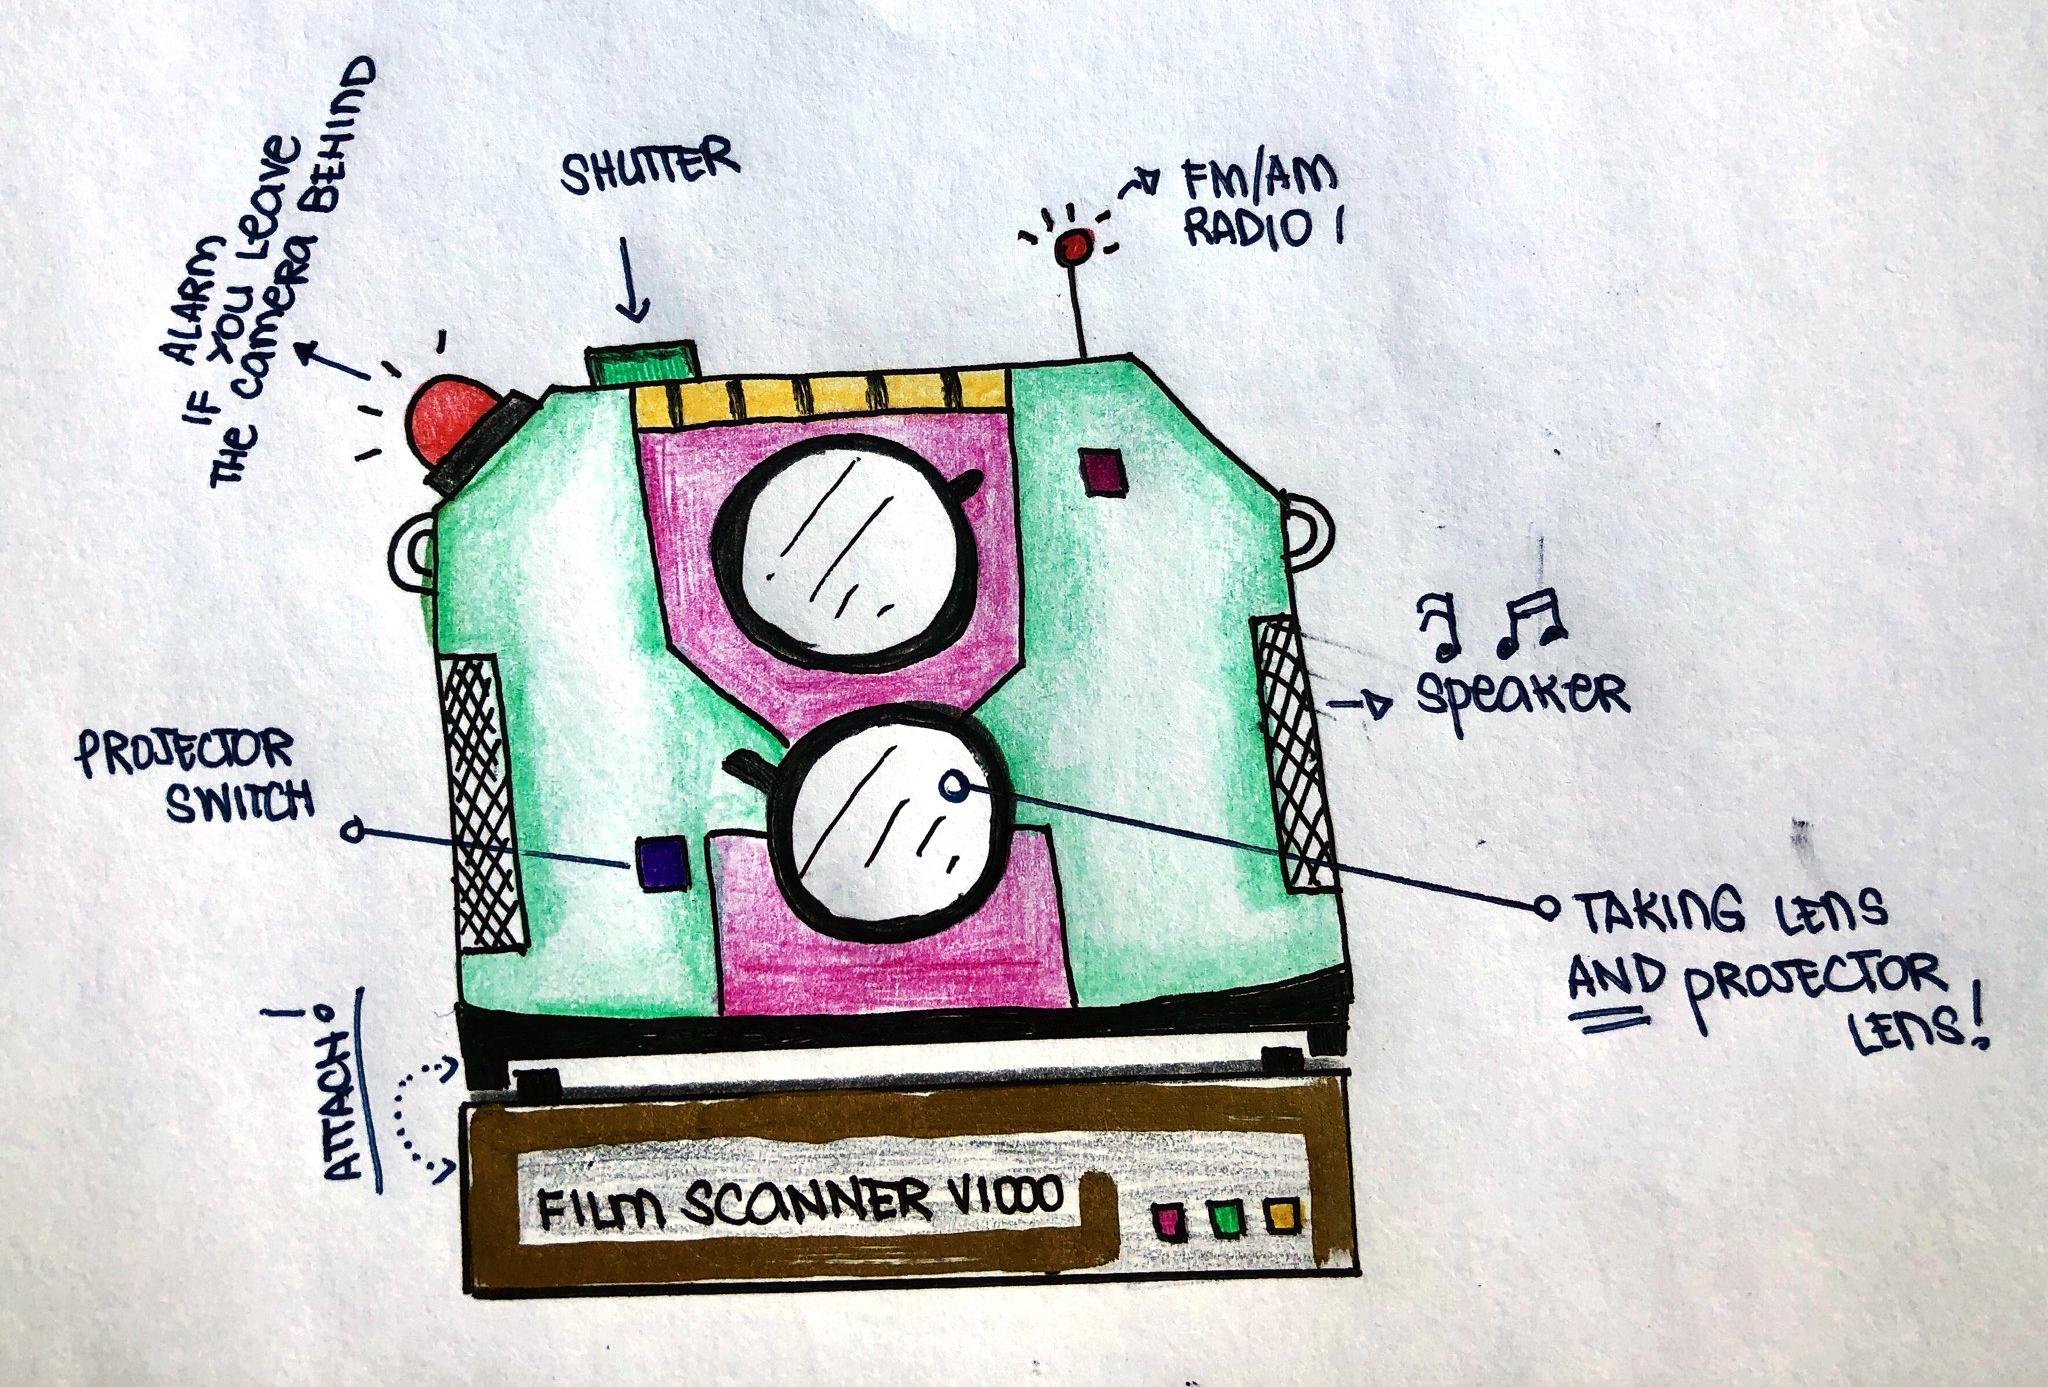 My dream camera, a TLR that doubles as a radio and a projector